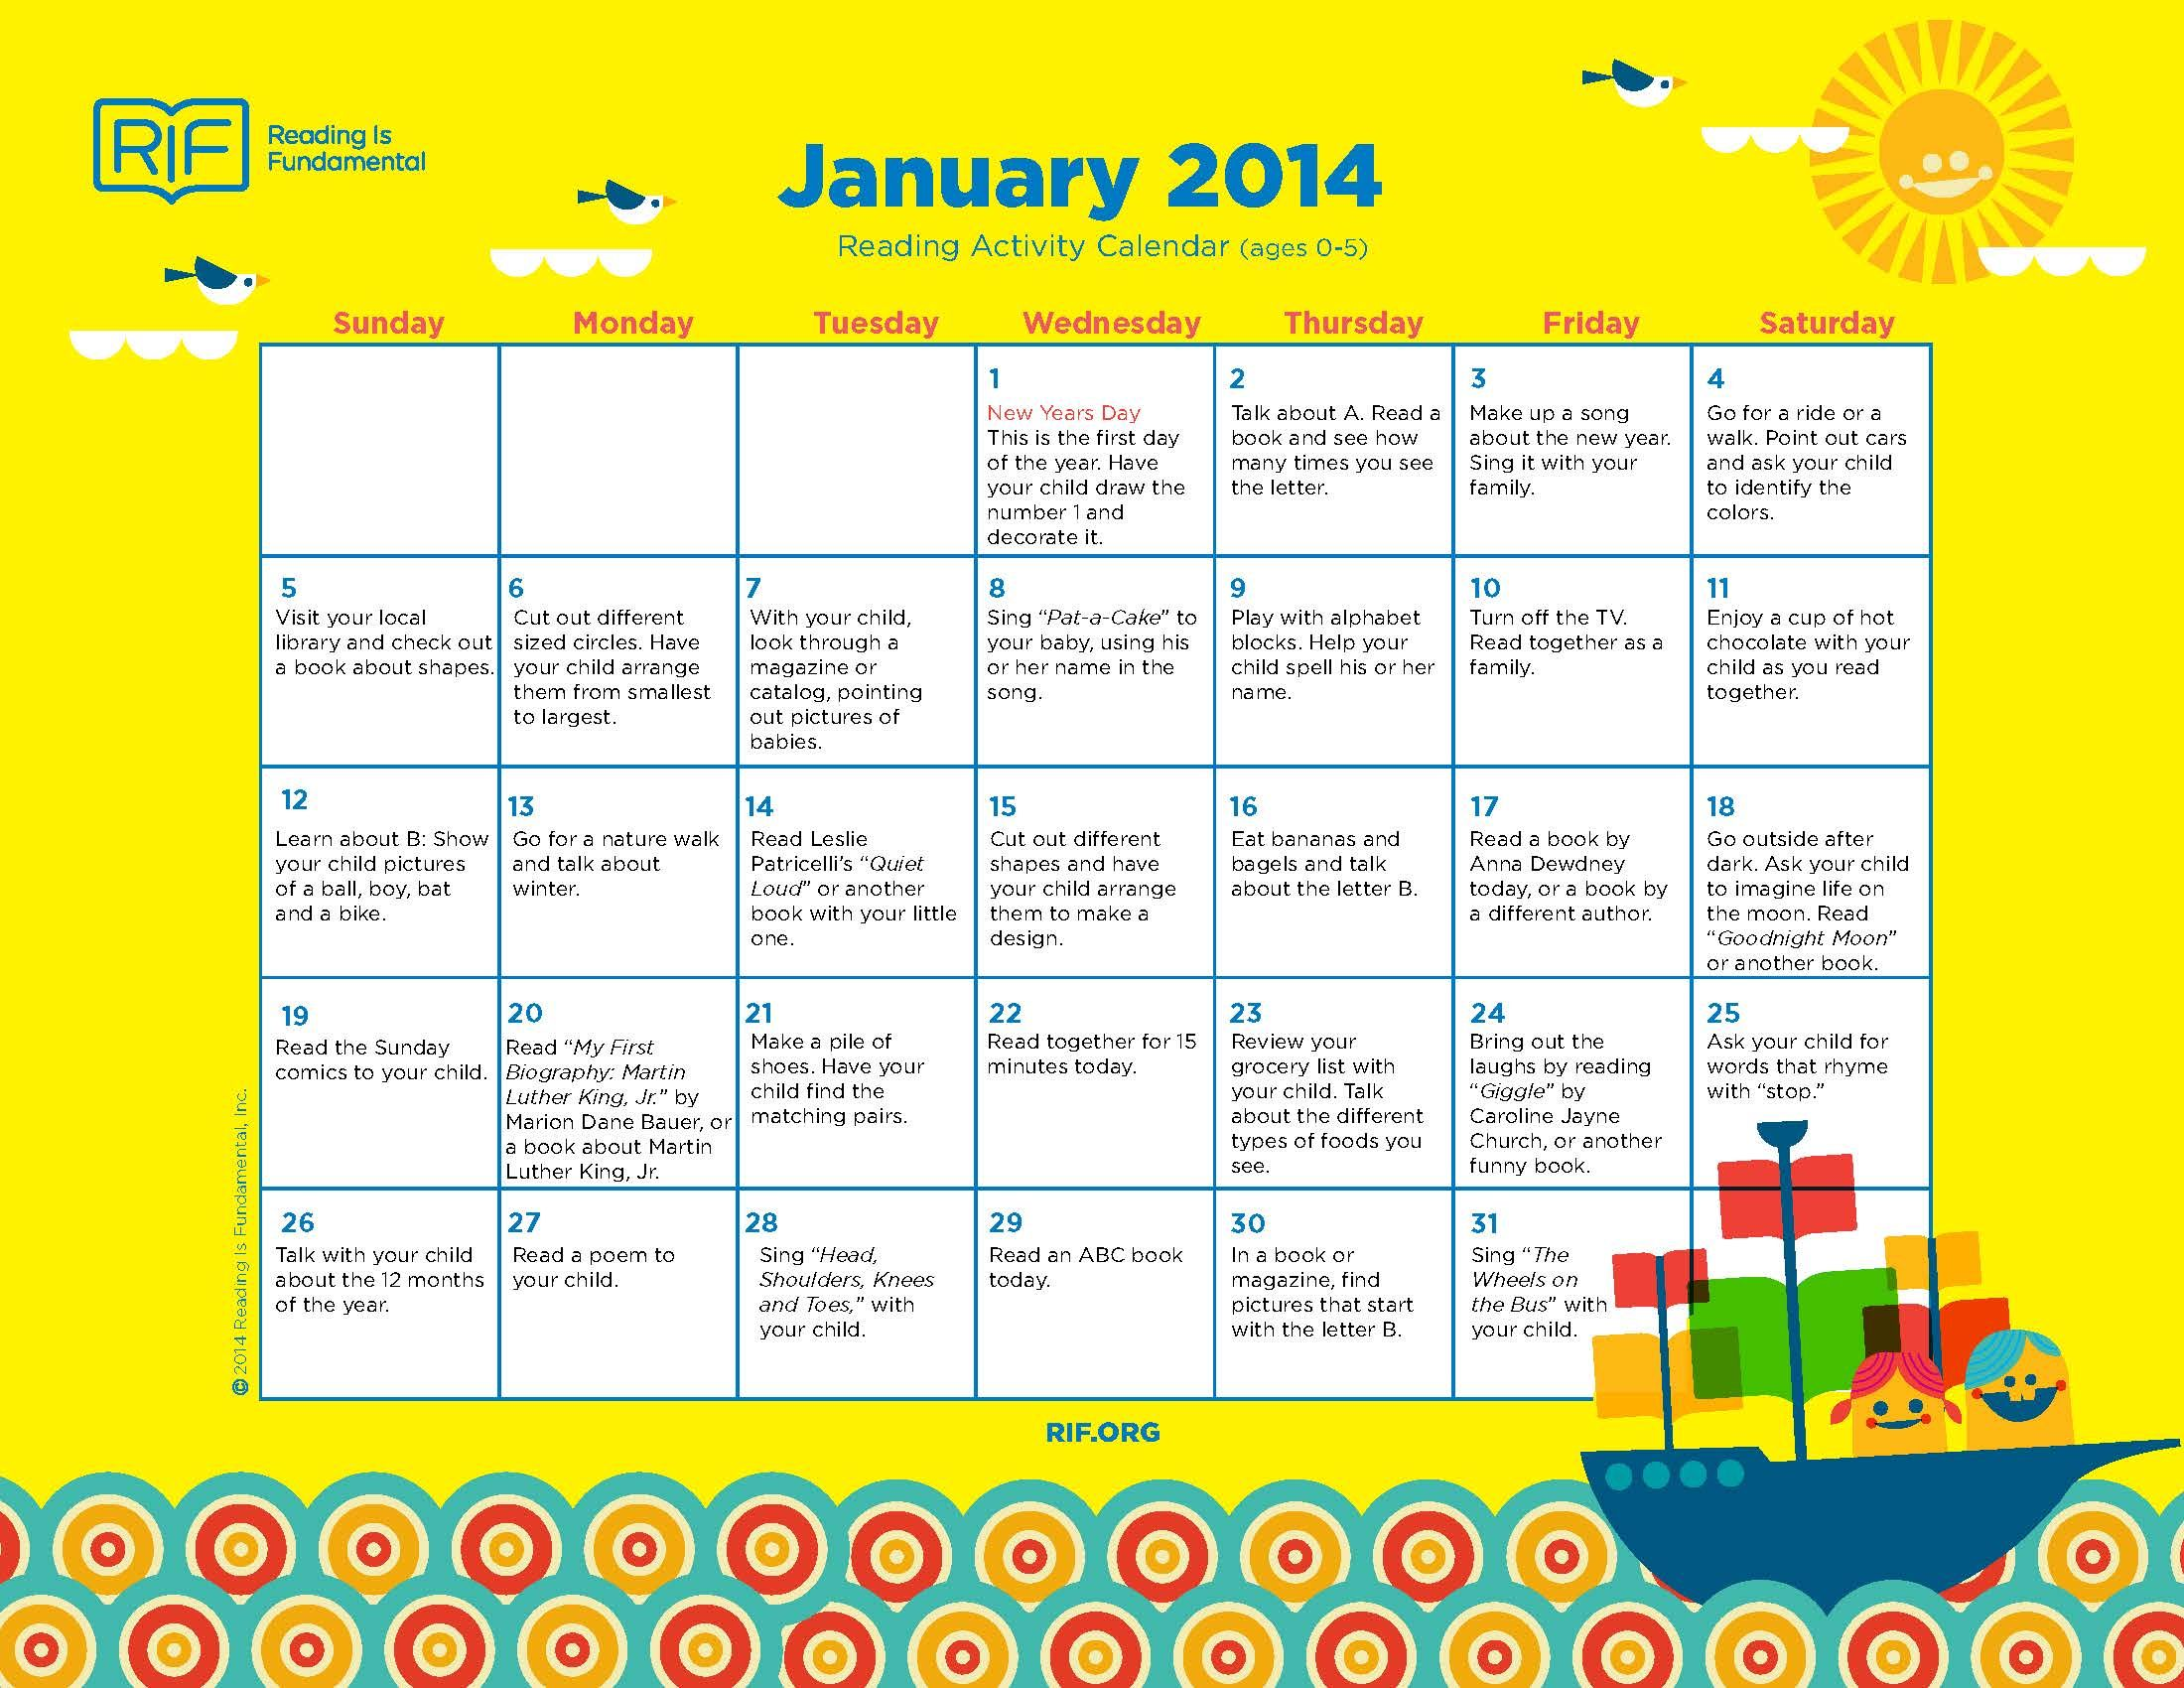 Calendar Monthly Activities : Free downloads of monthly reading activity calendars from